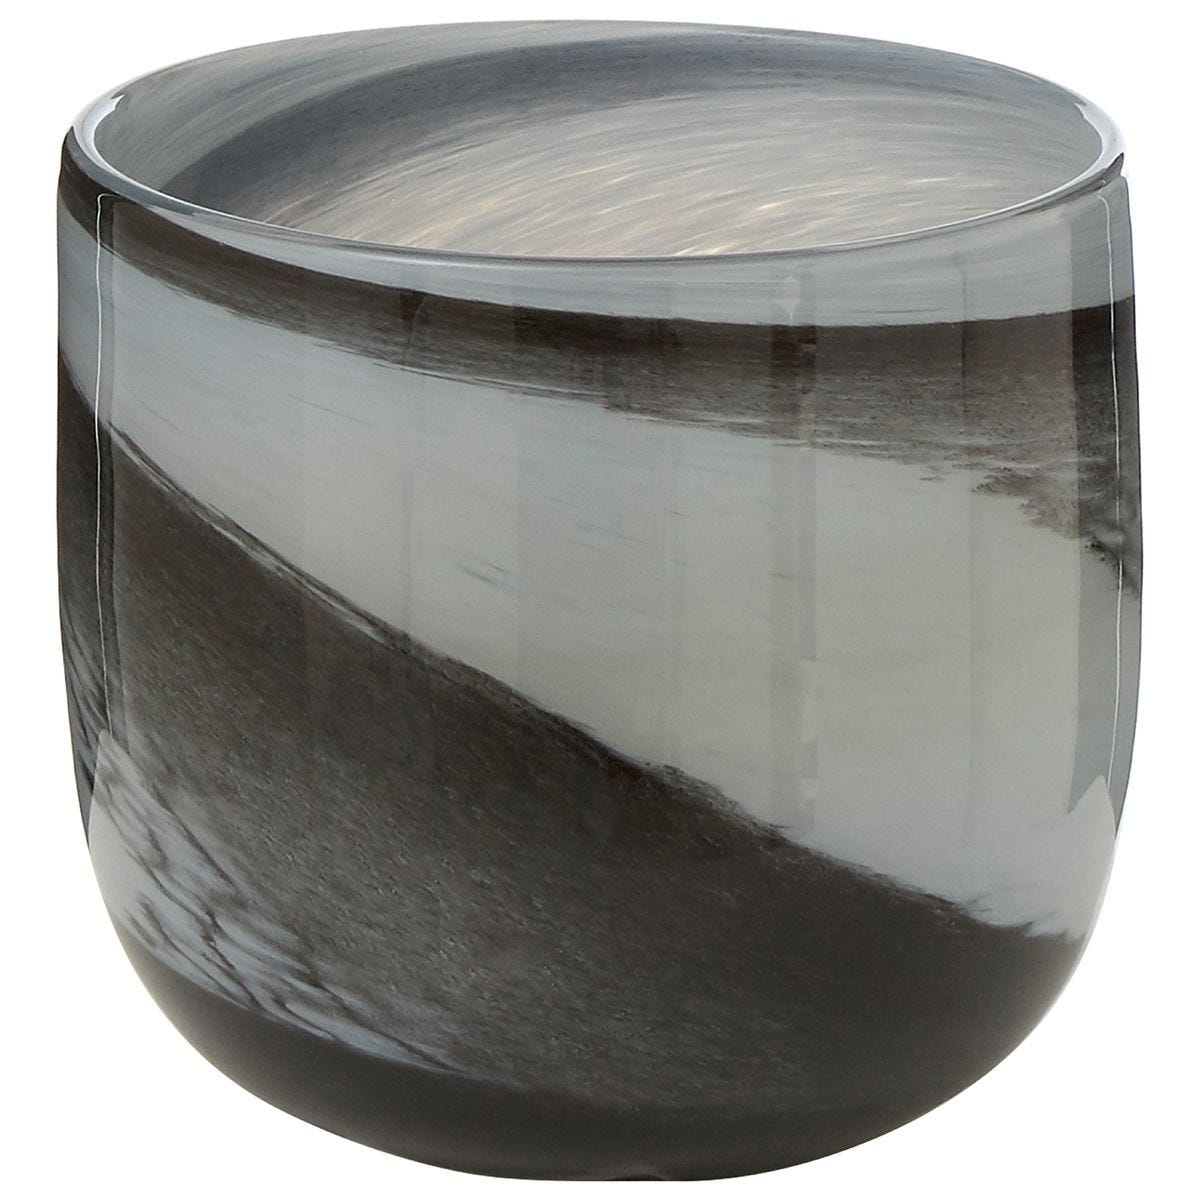 Premier Housewares Carra Glass Planter - Grey/Black Brushstrokes